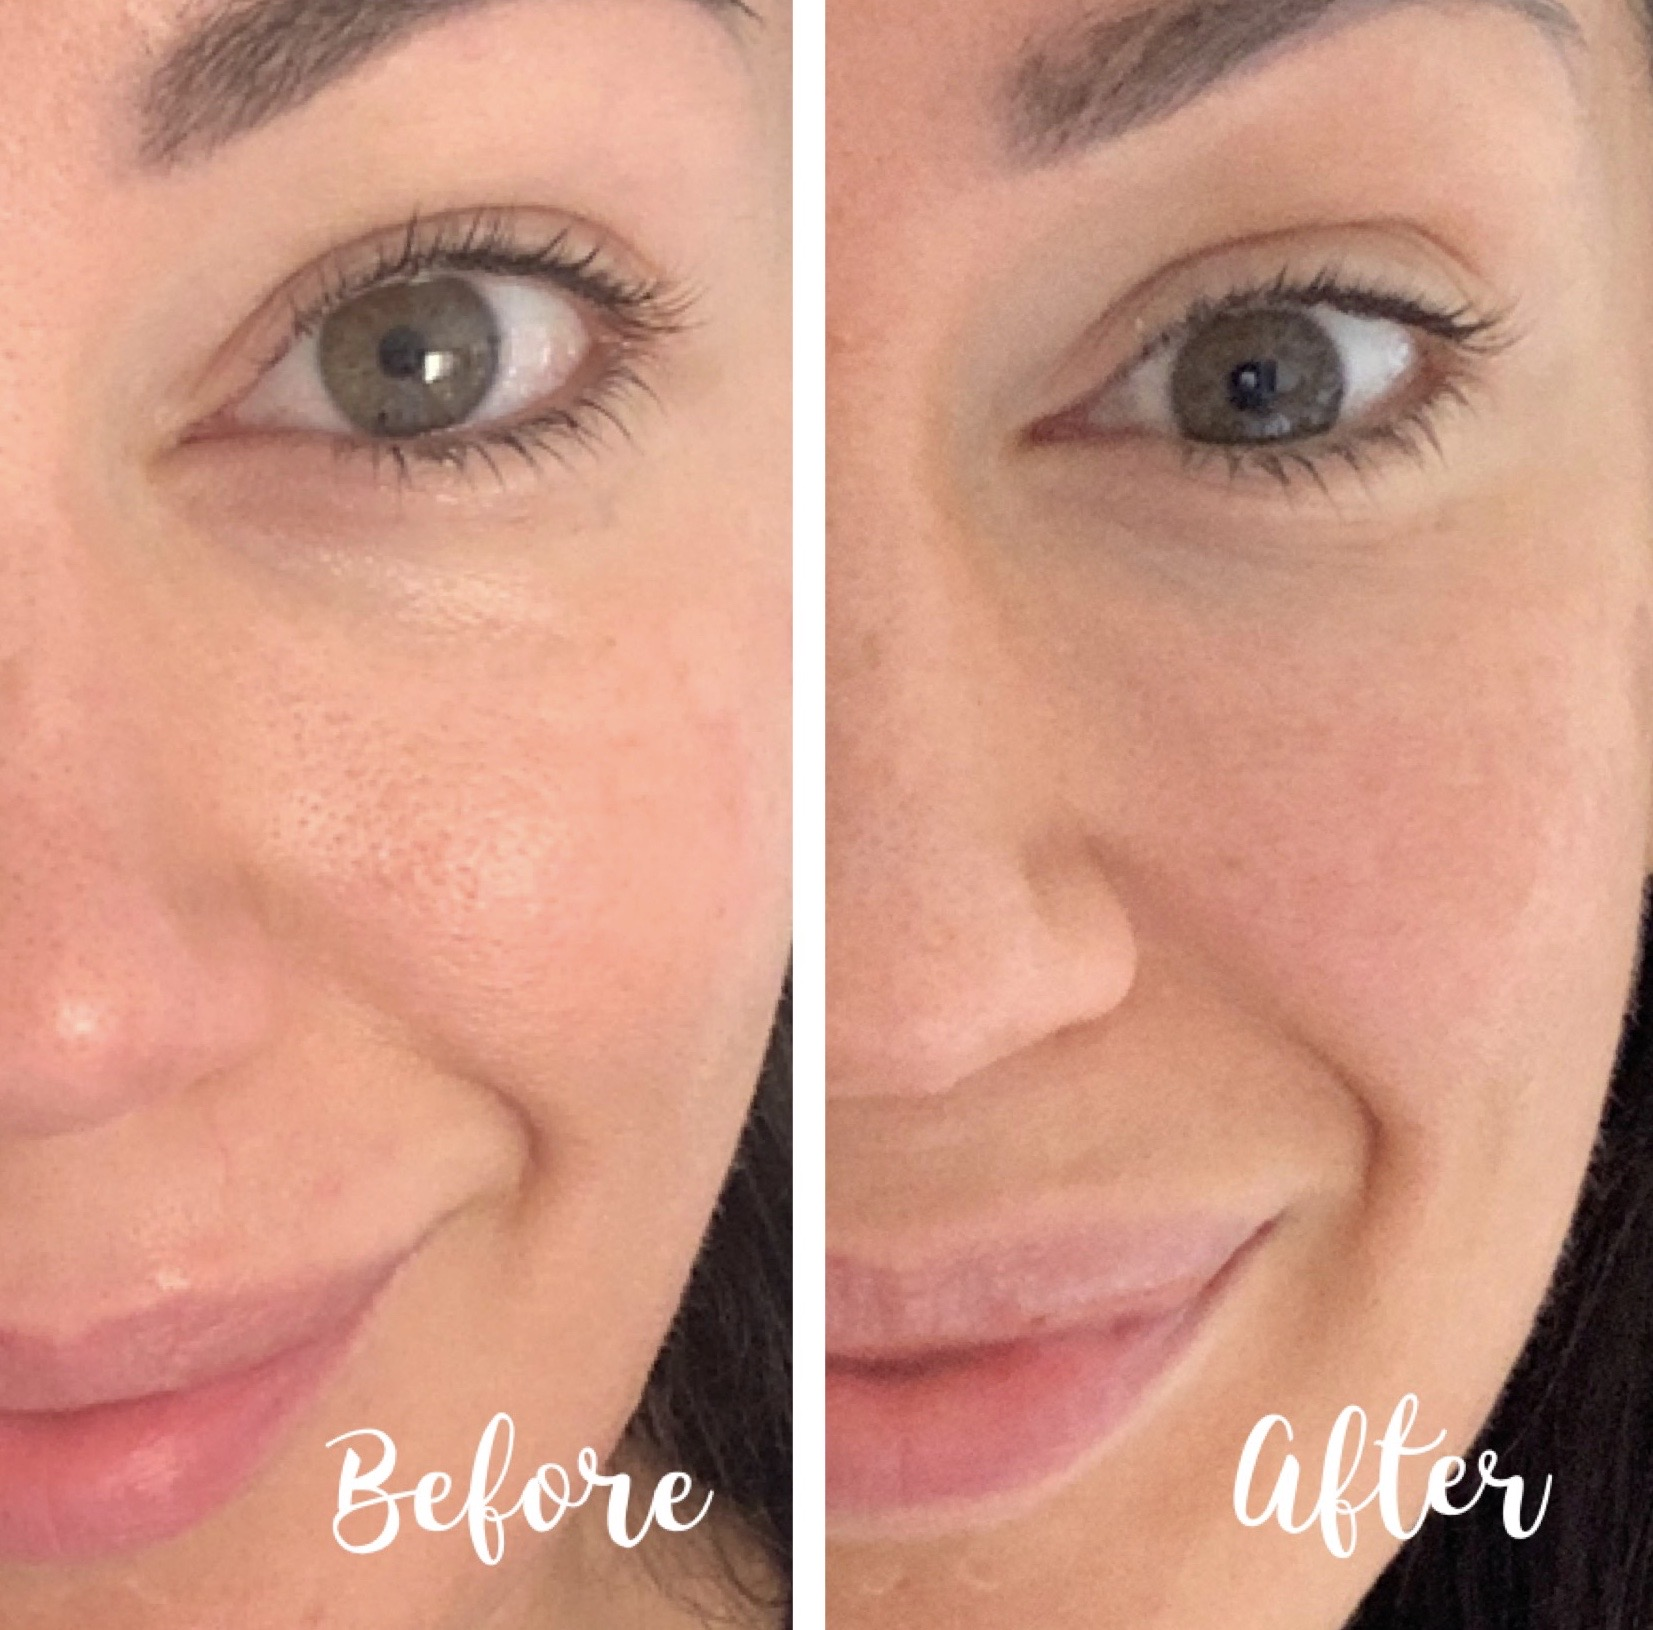 How I Improved My Skin In 28 Days With Olay Retinol24 And How I